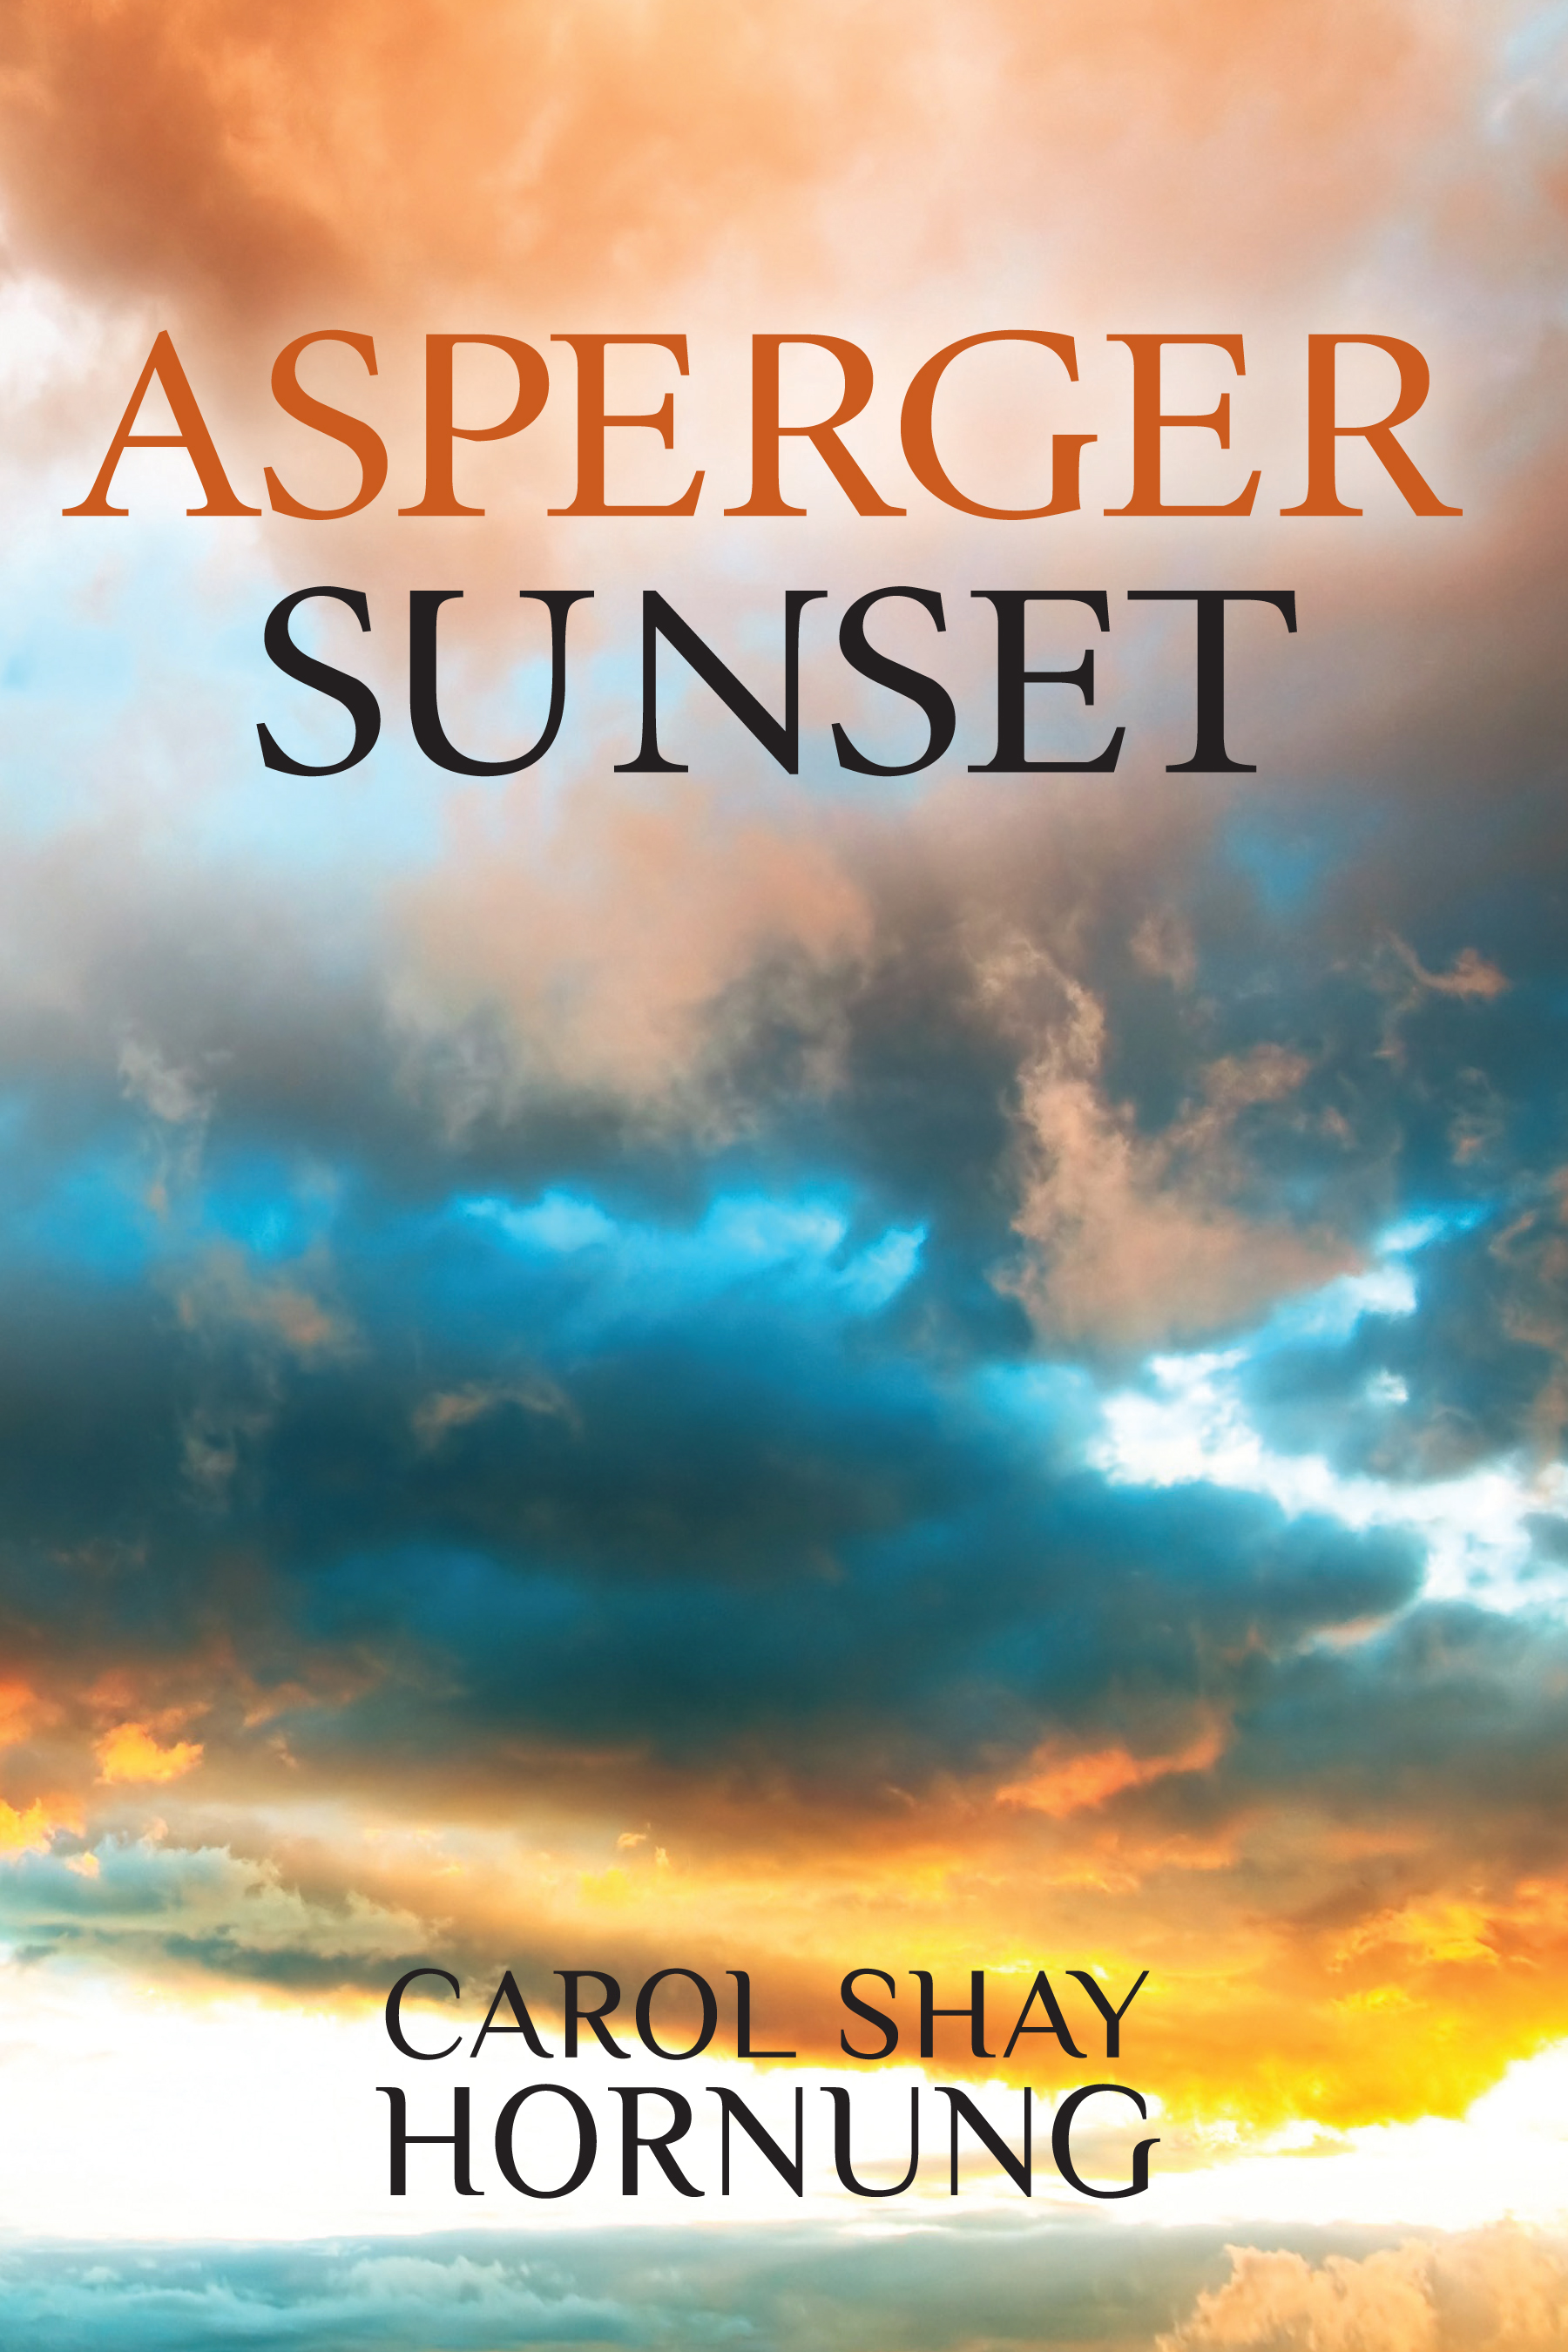 Asperger Sunset – Click here to purchase